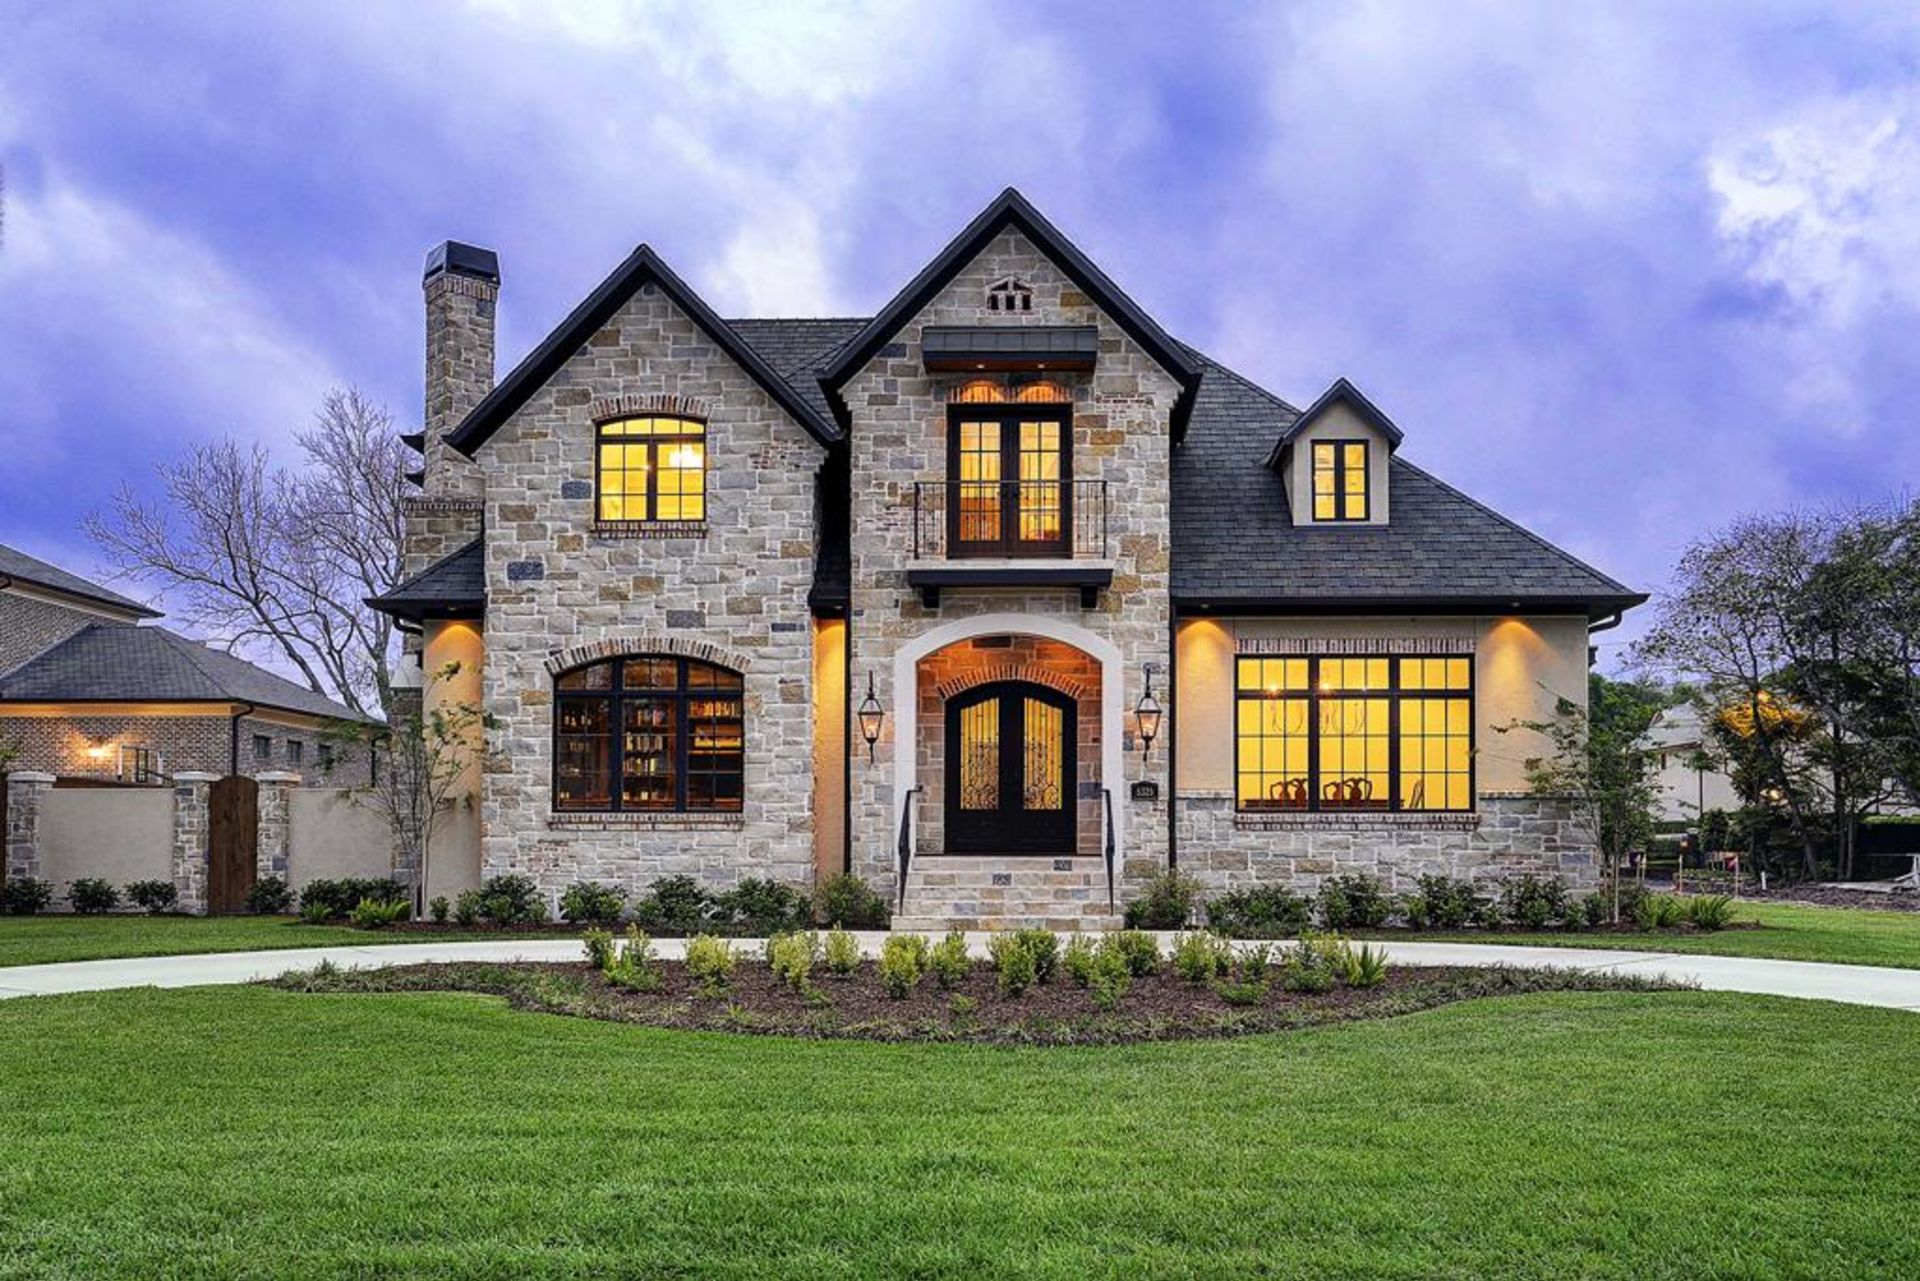 3 Most Expensive Homes for Sale in Bellaire